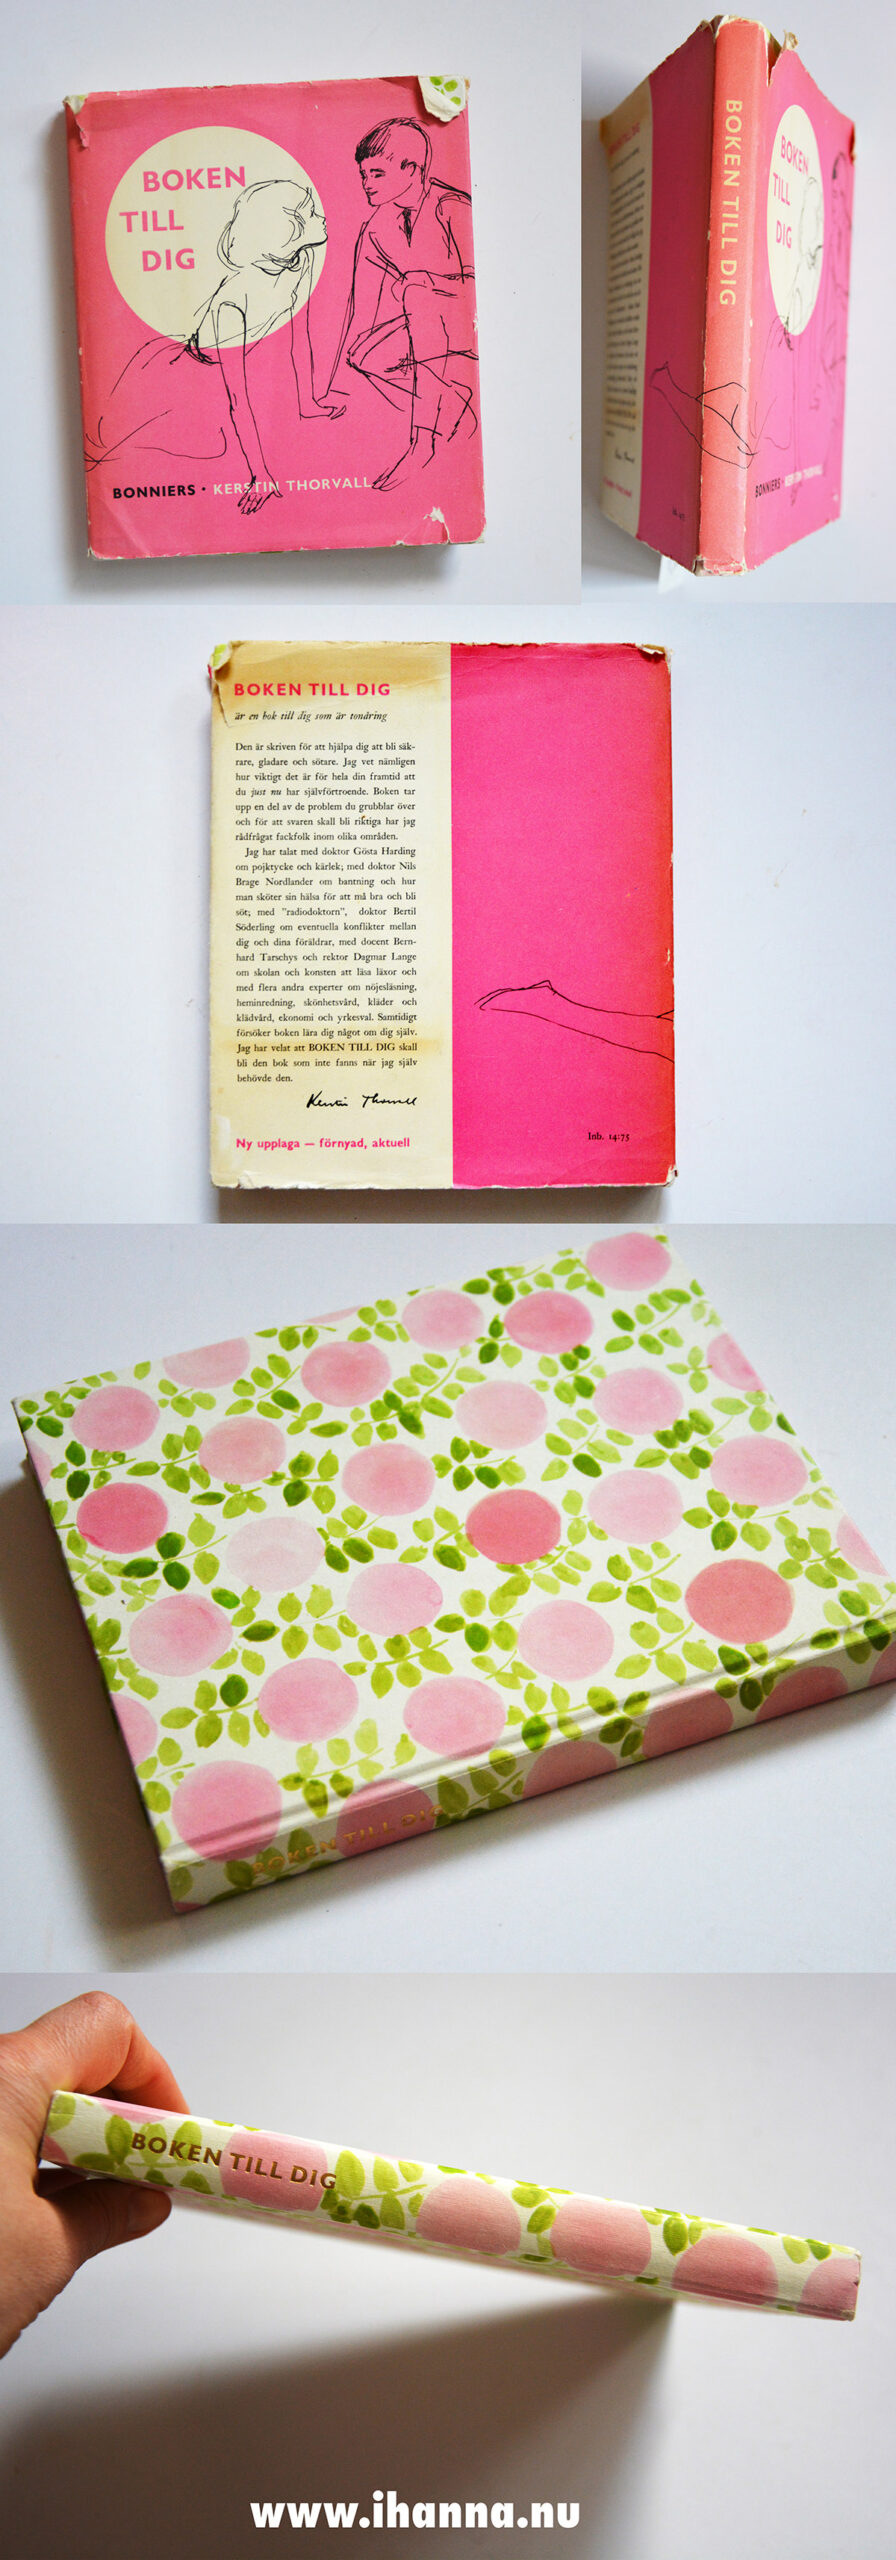 Boken till dig book cover with roses - Photographed by Hanna Andersson #swedish